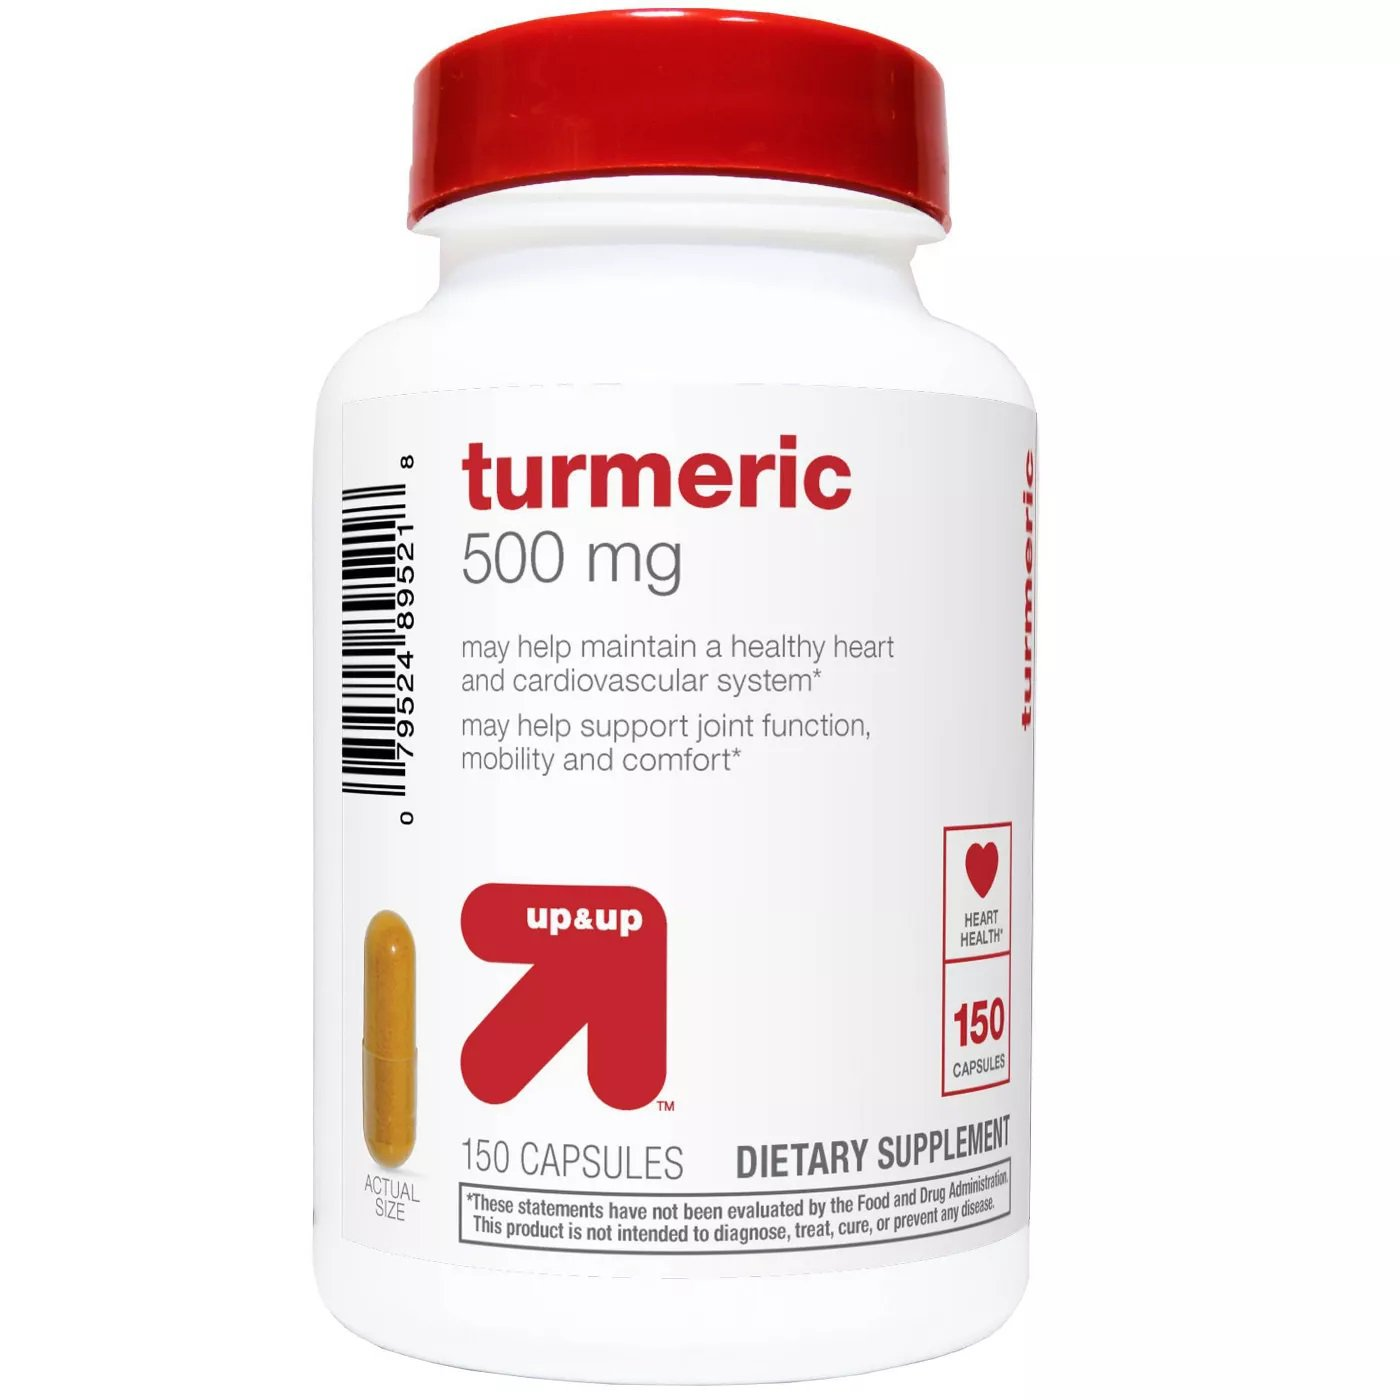 Turmeric 500 mg Supplement Capsules - 150 Count - up & up